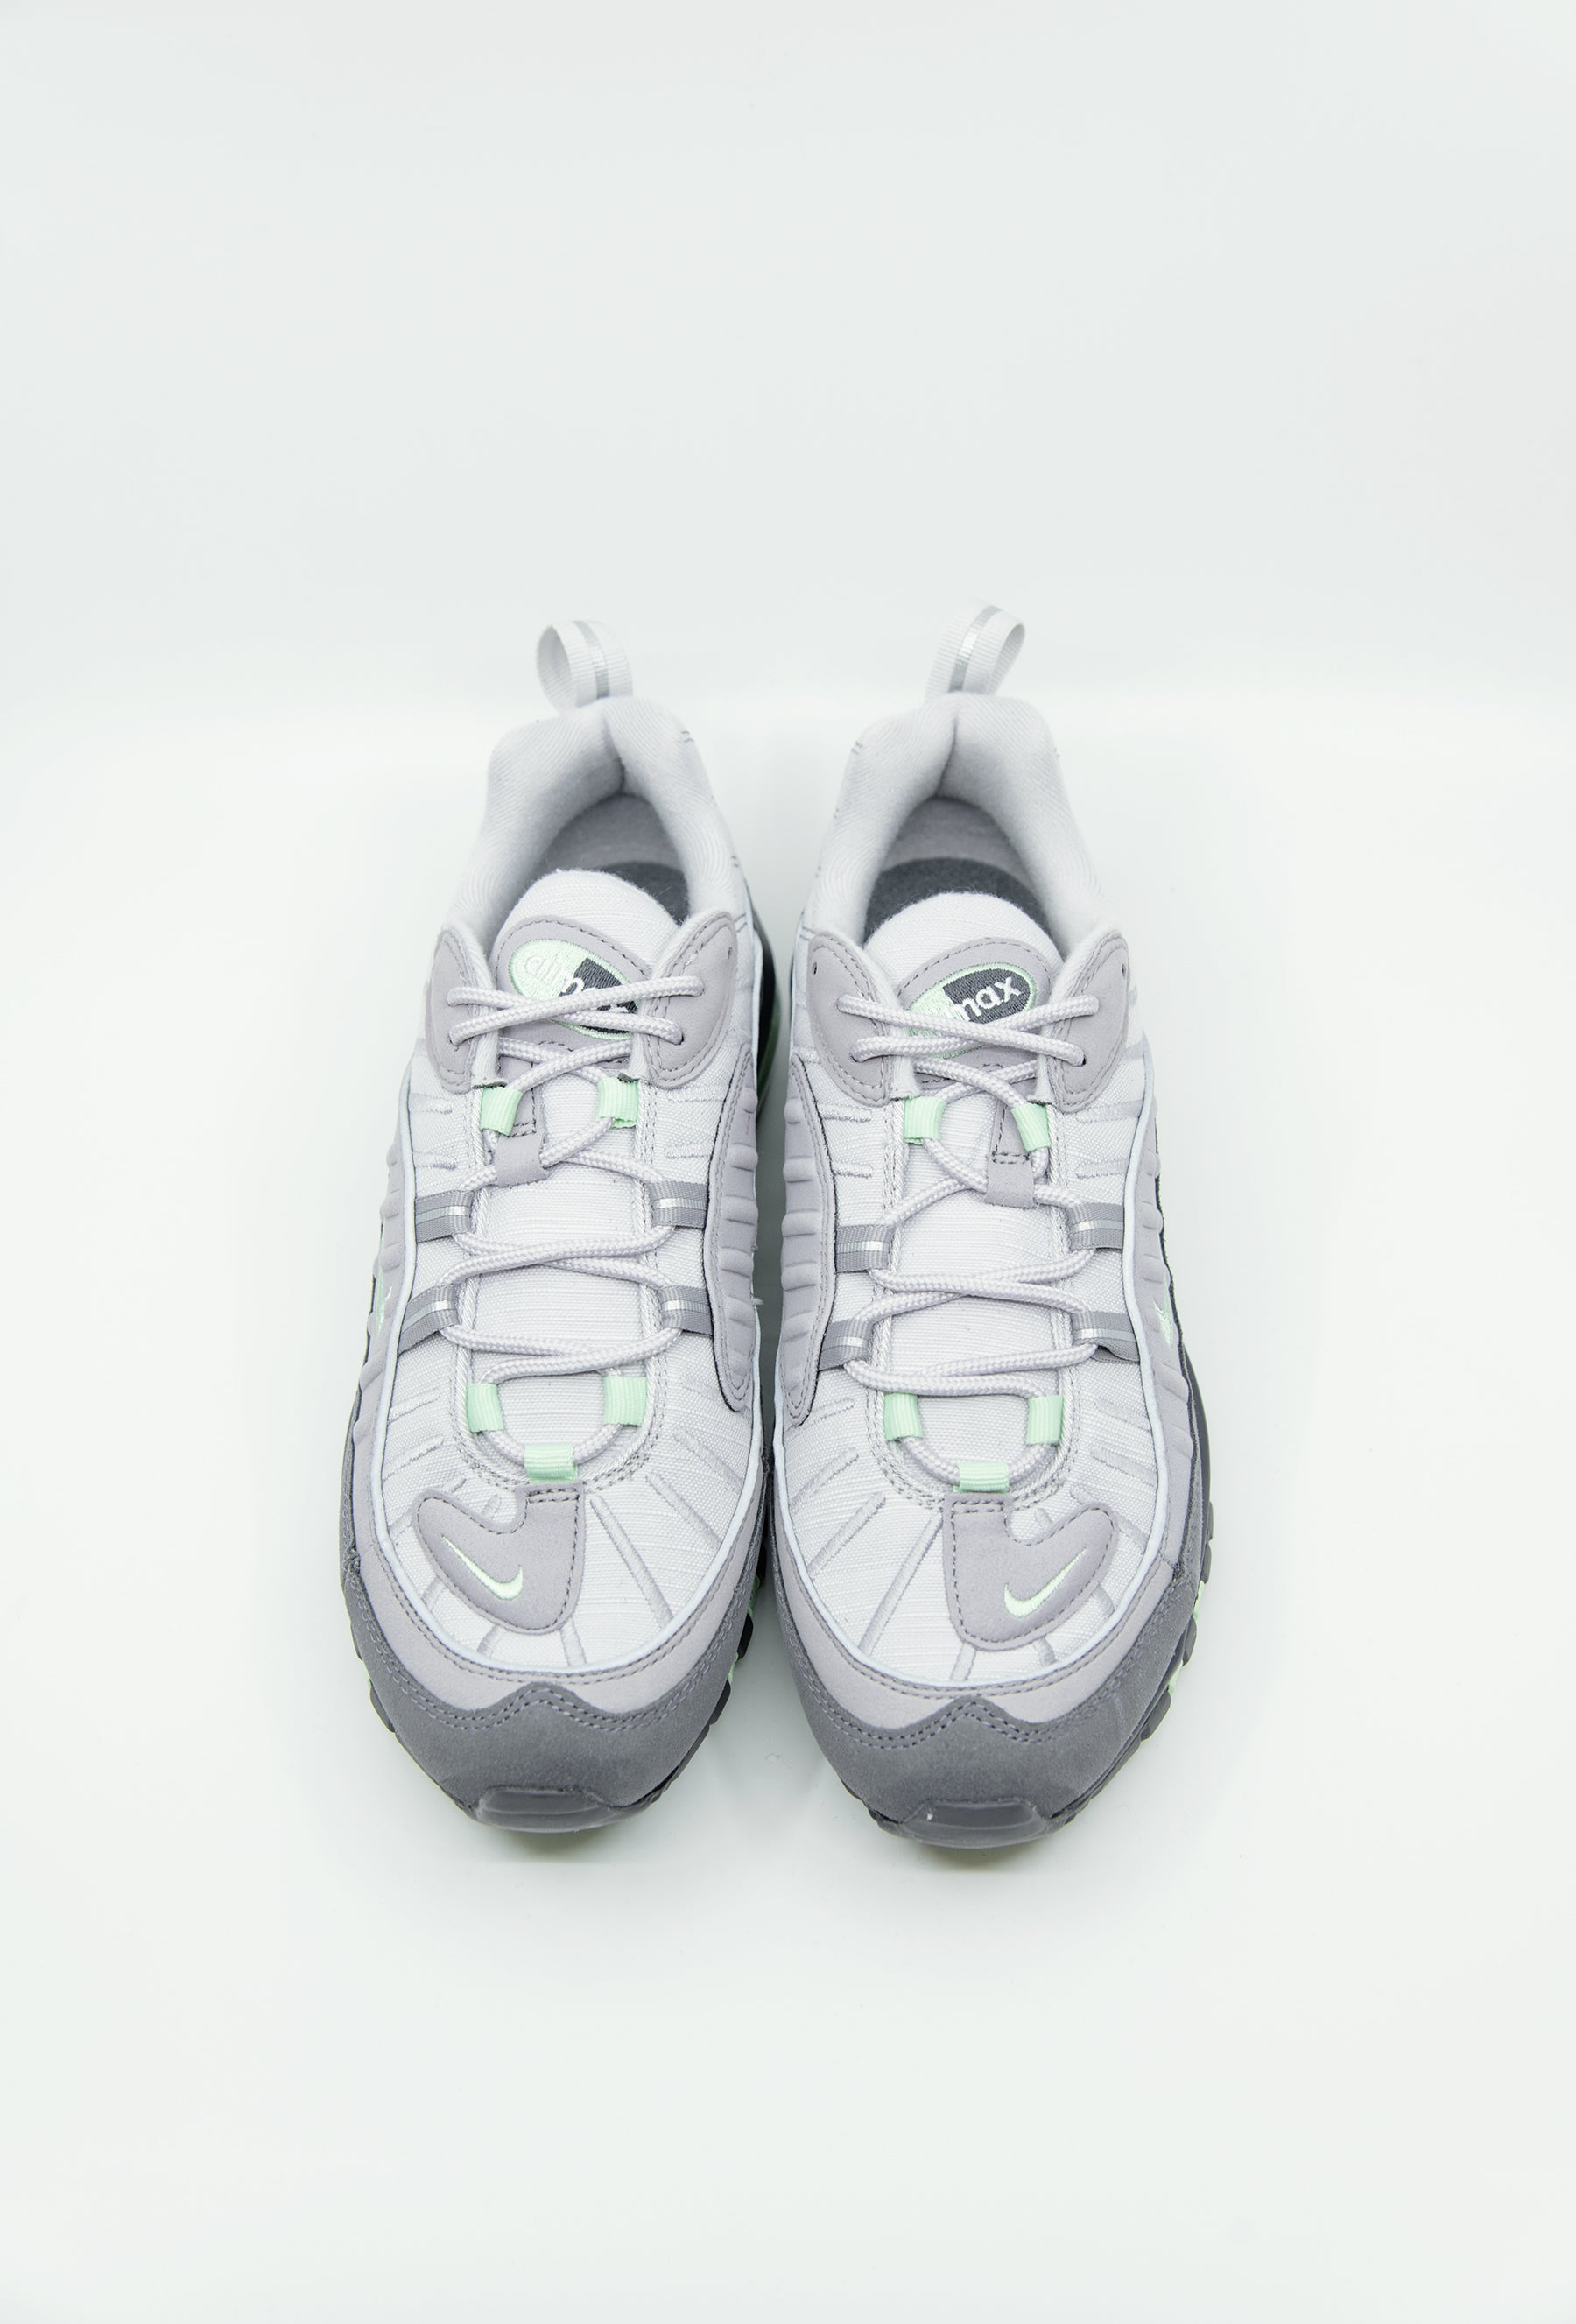 803628aa5e0a Nike Air Max 98 Vast Grey Fresh Mint Atmosphere Grey 640744-011 - NOMAD